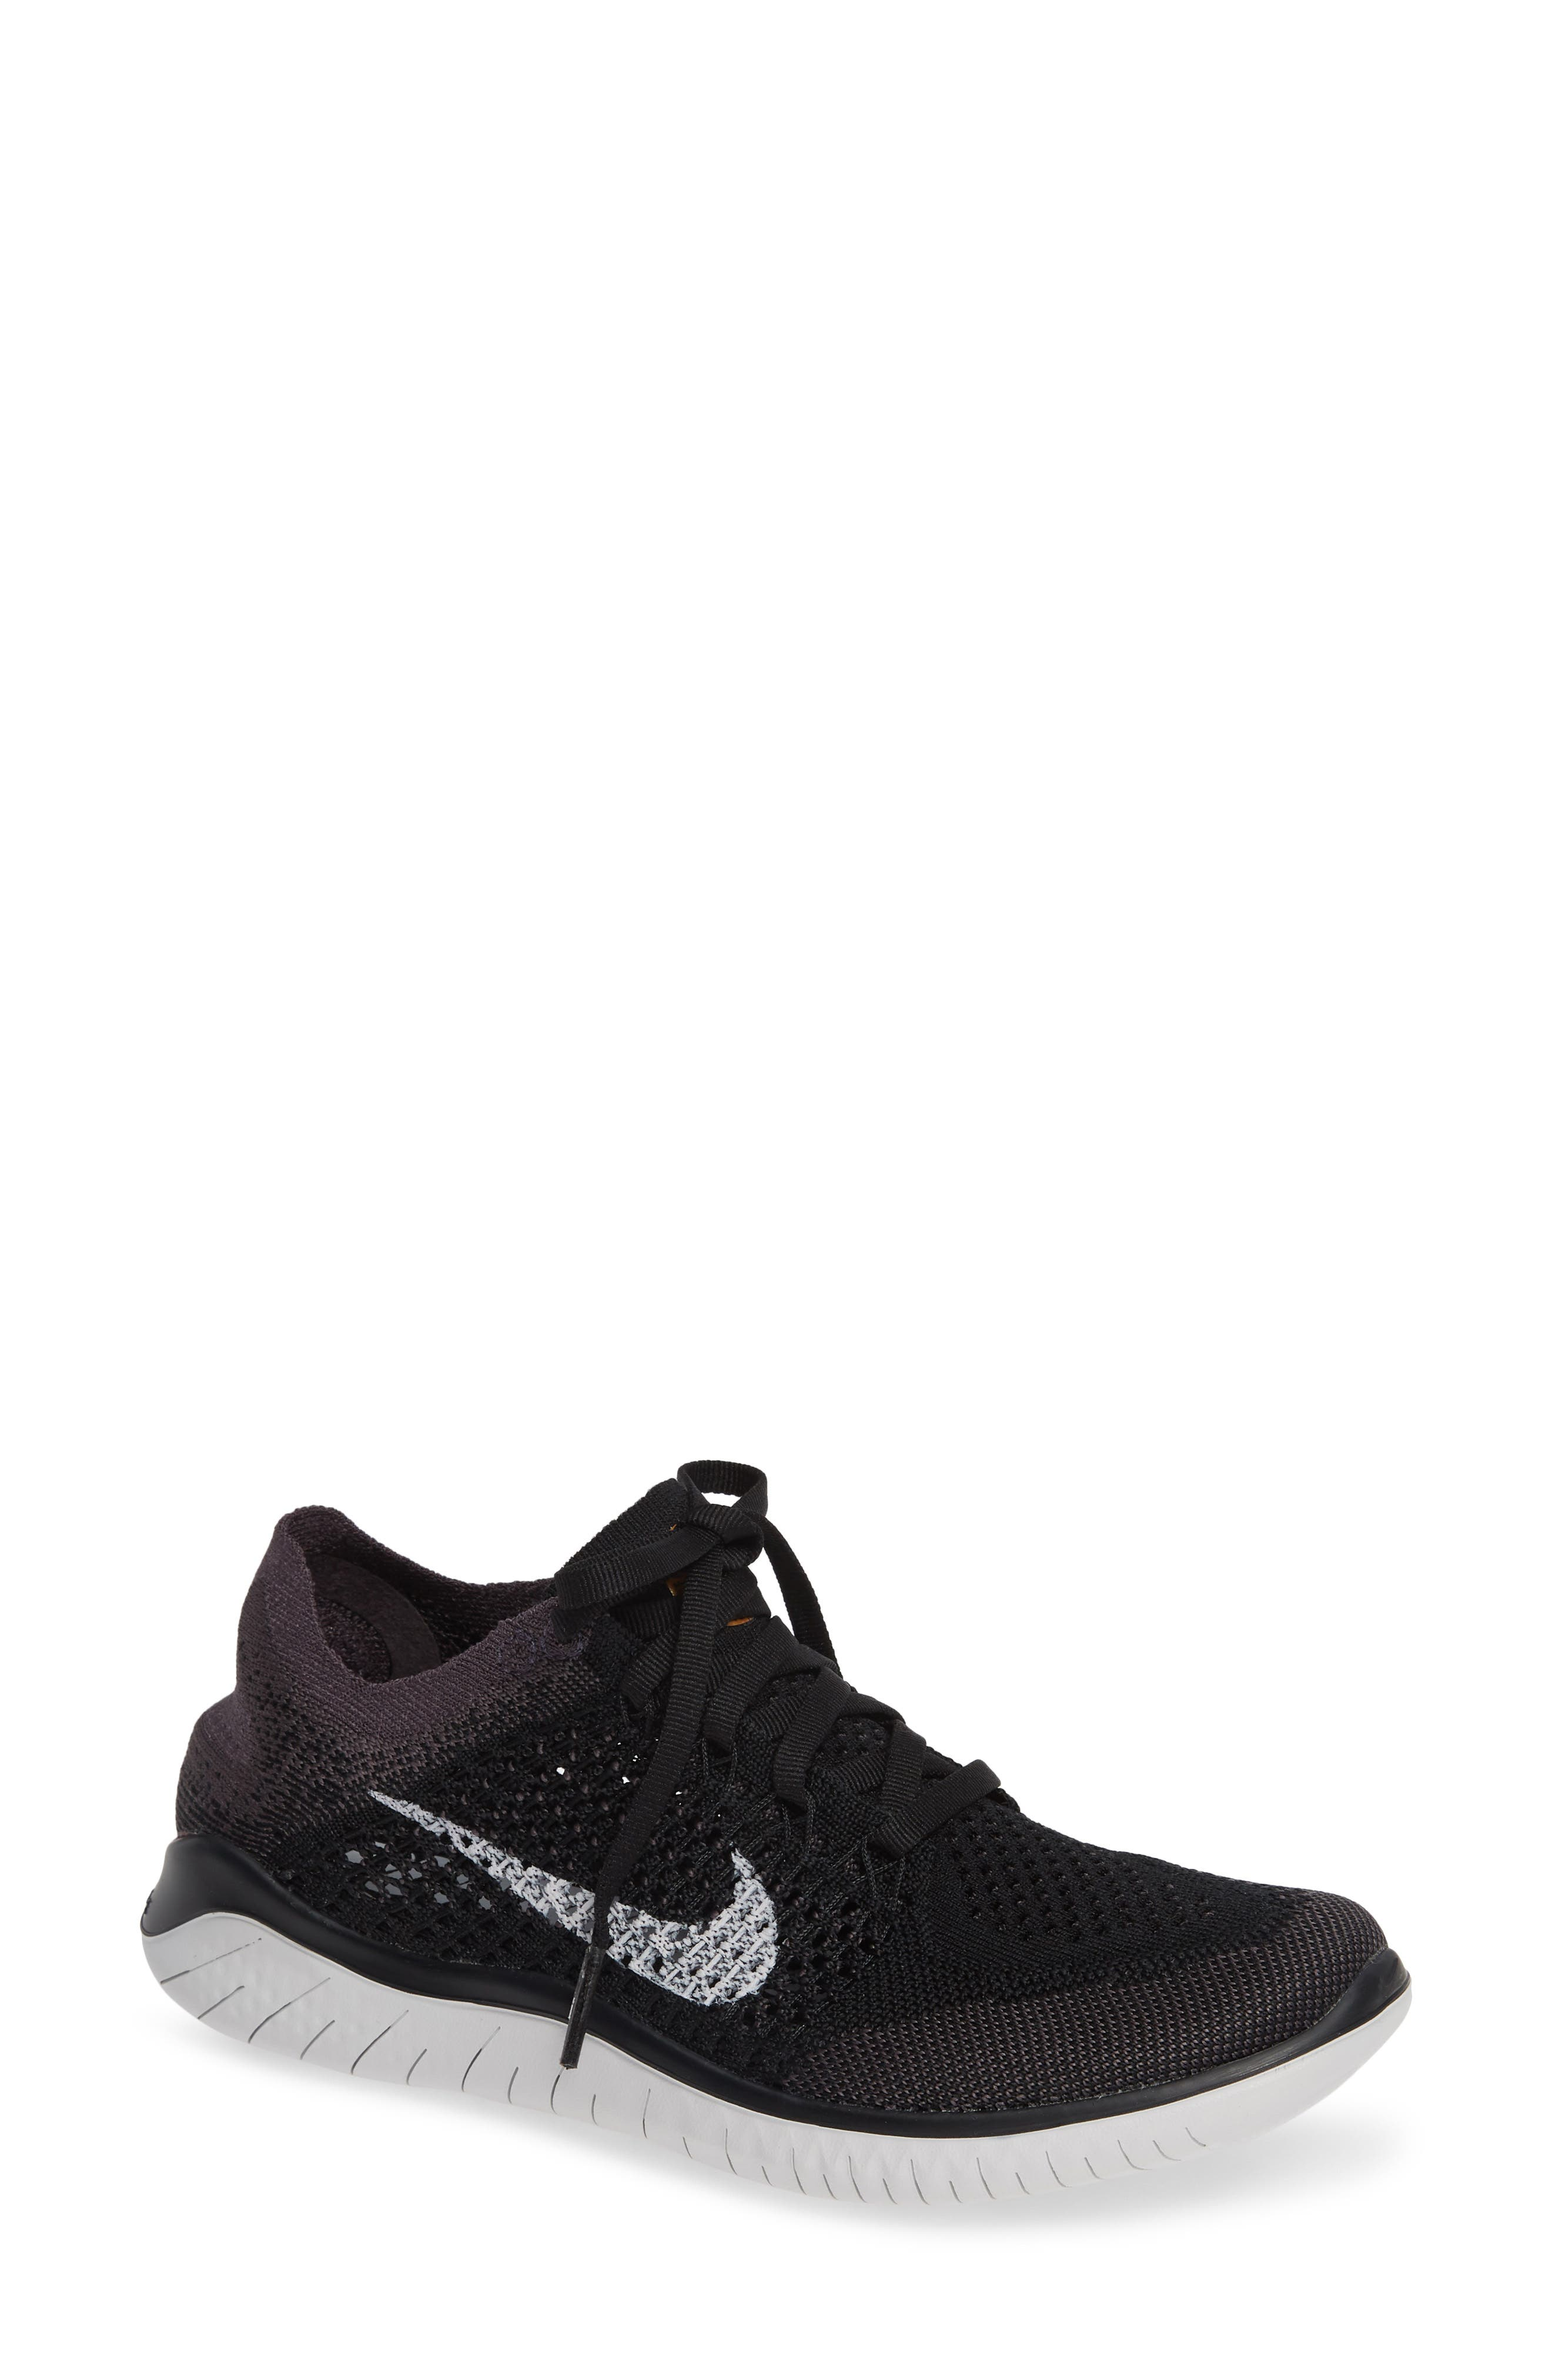 ,                             Free RN Flyknit 2018 Running Shoe,                             Main thumbnail 1, color,                             BLACK/ VAST GREY/ GOLD